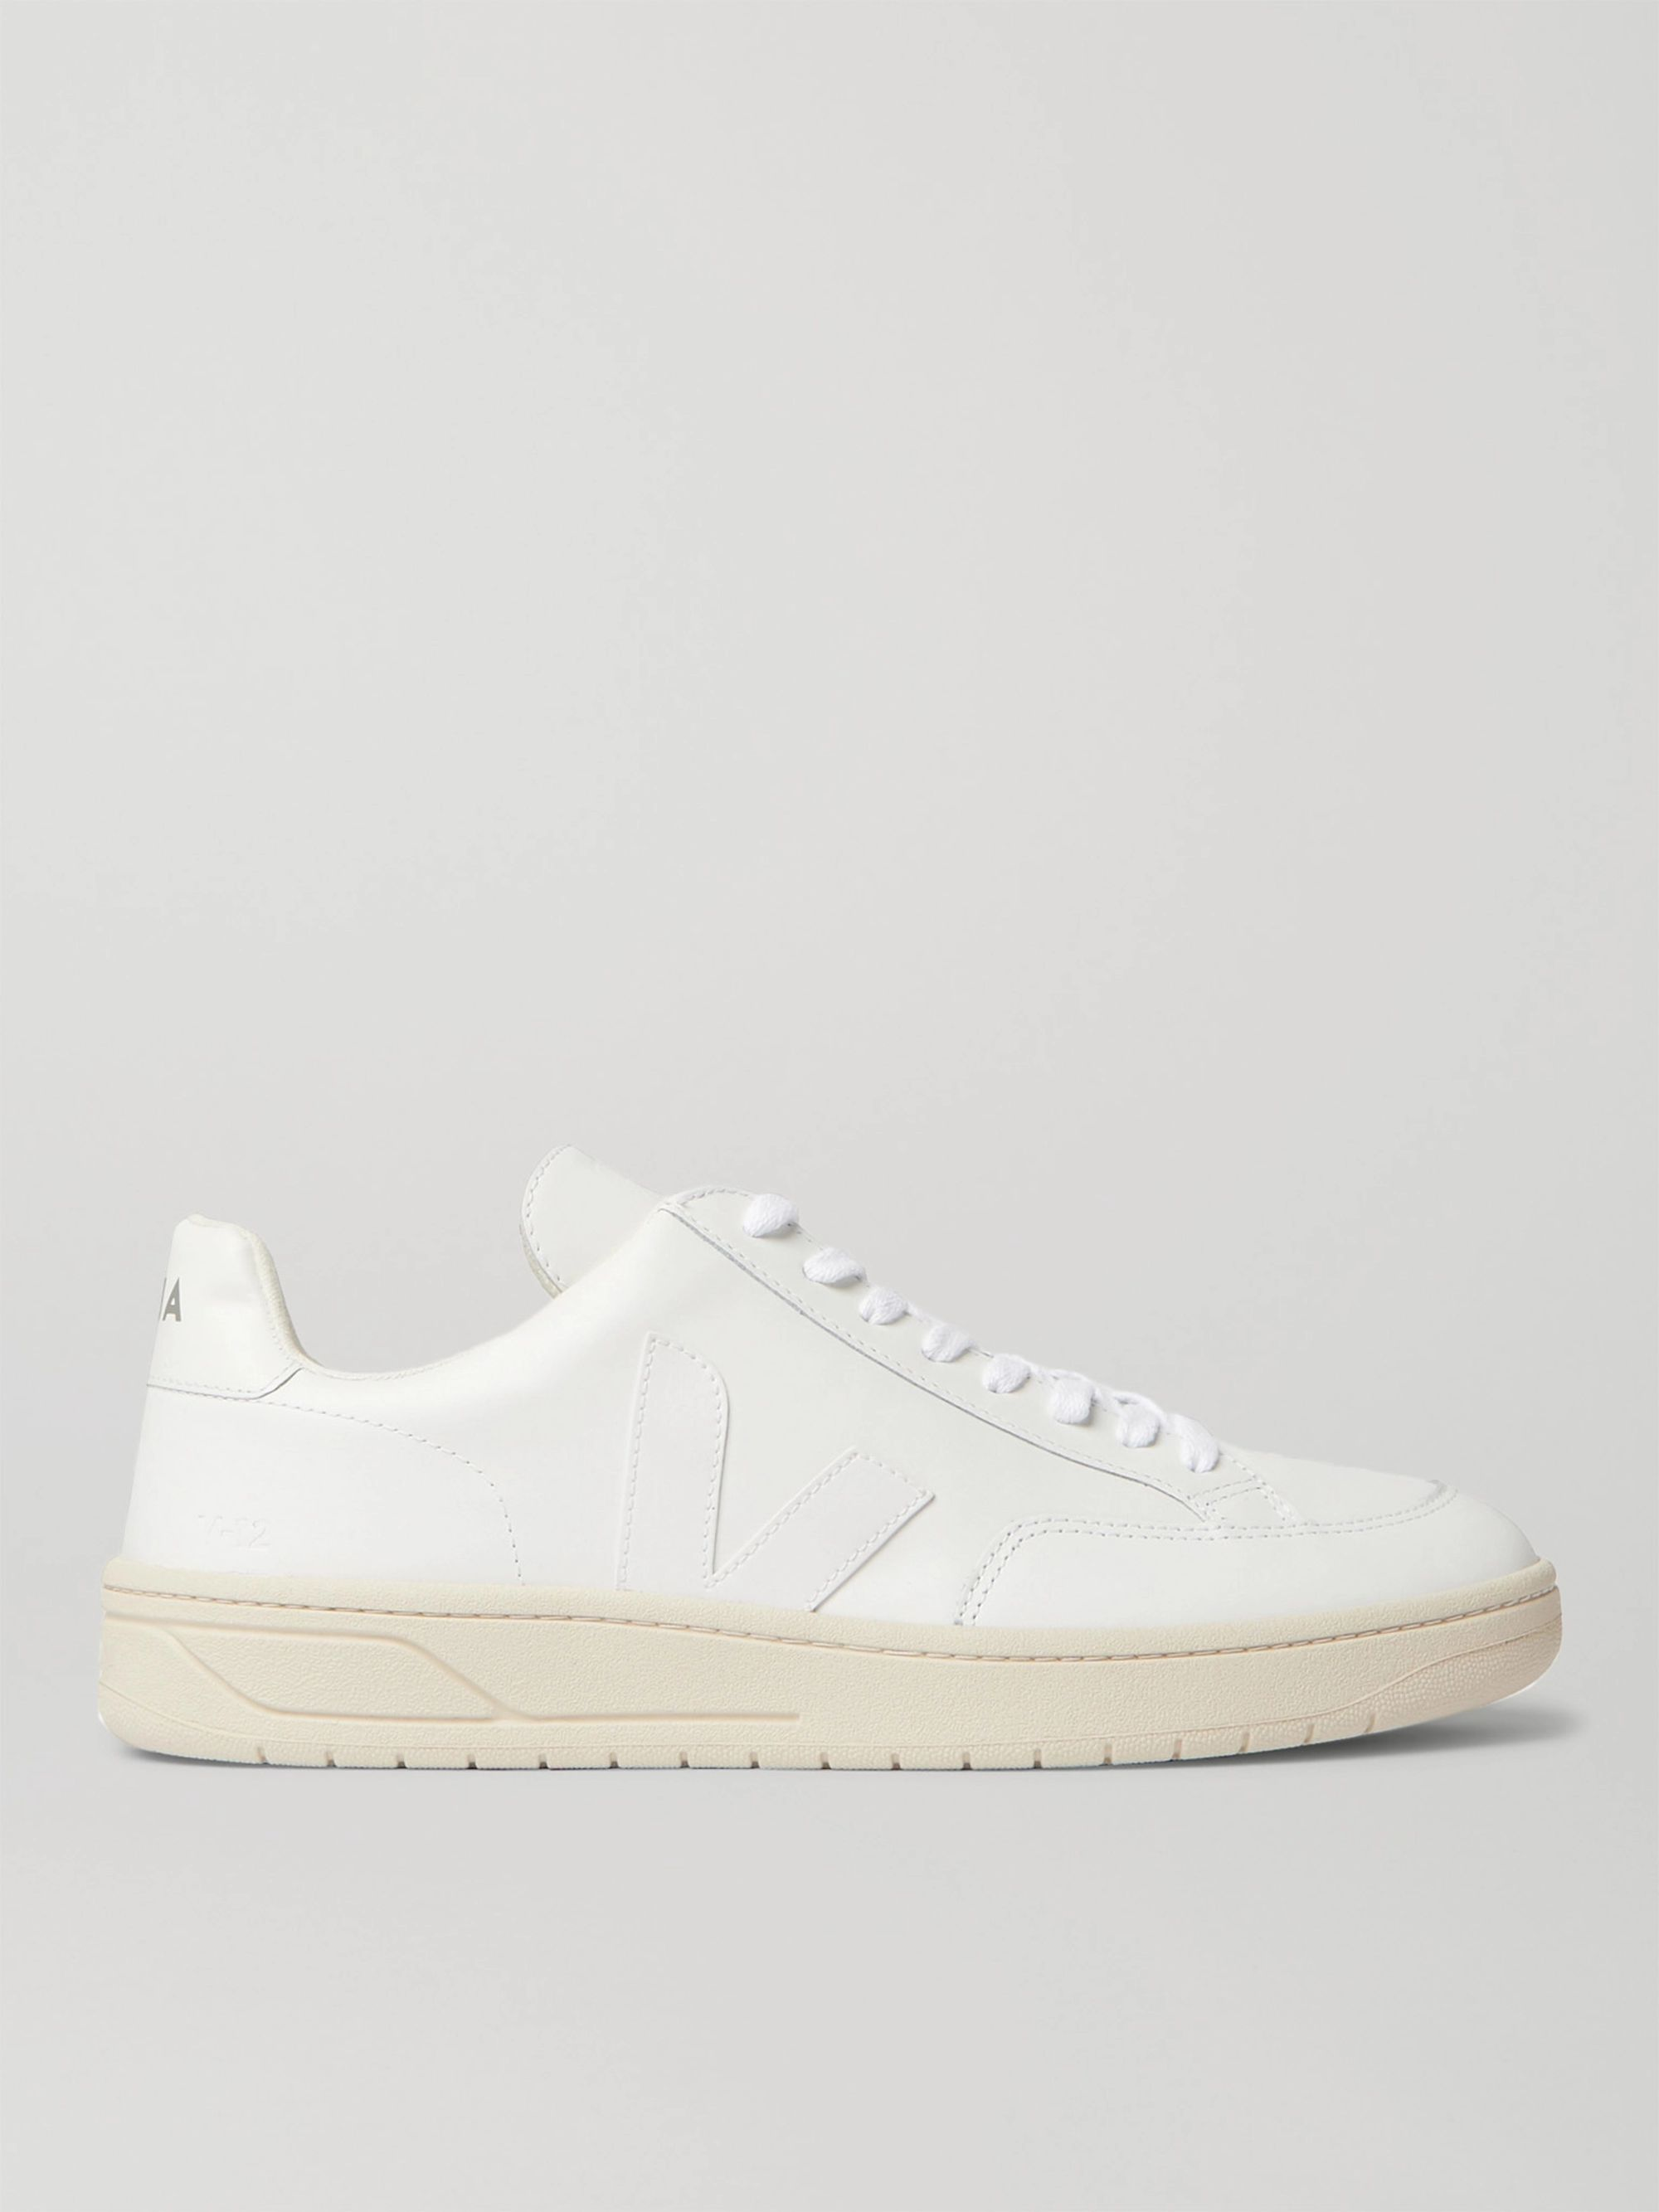 White V-12 Suede-Trimmed Leather